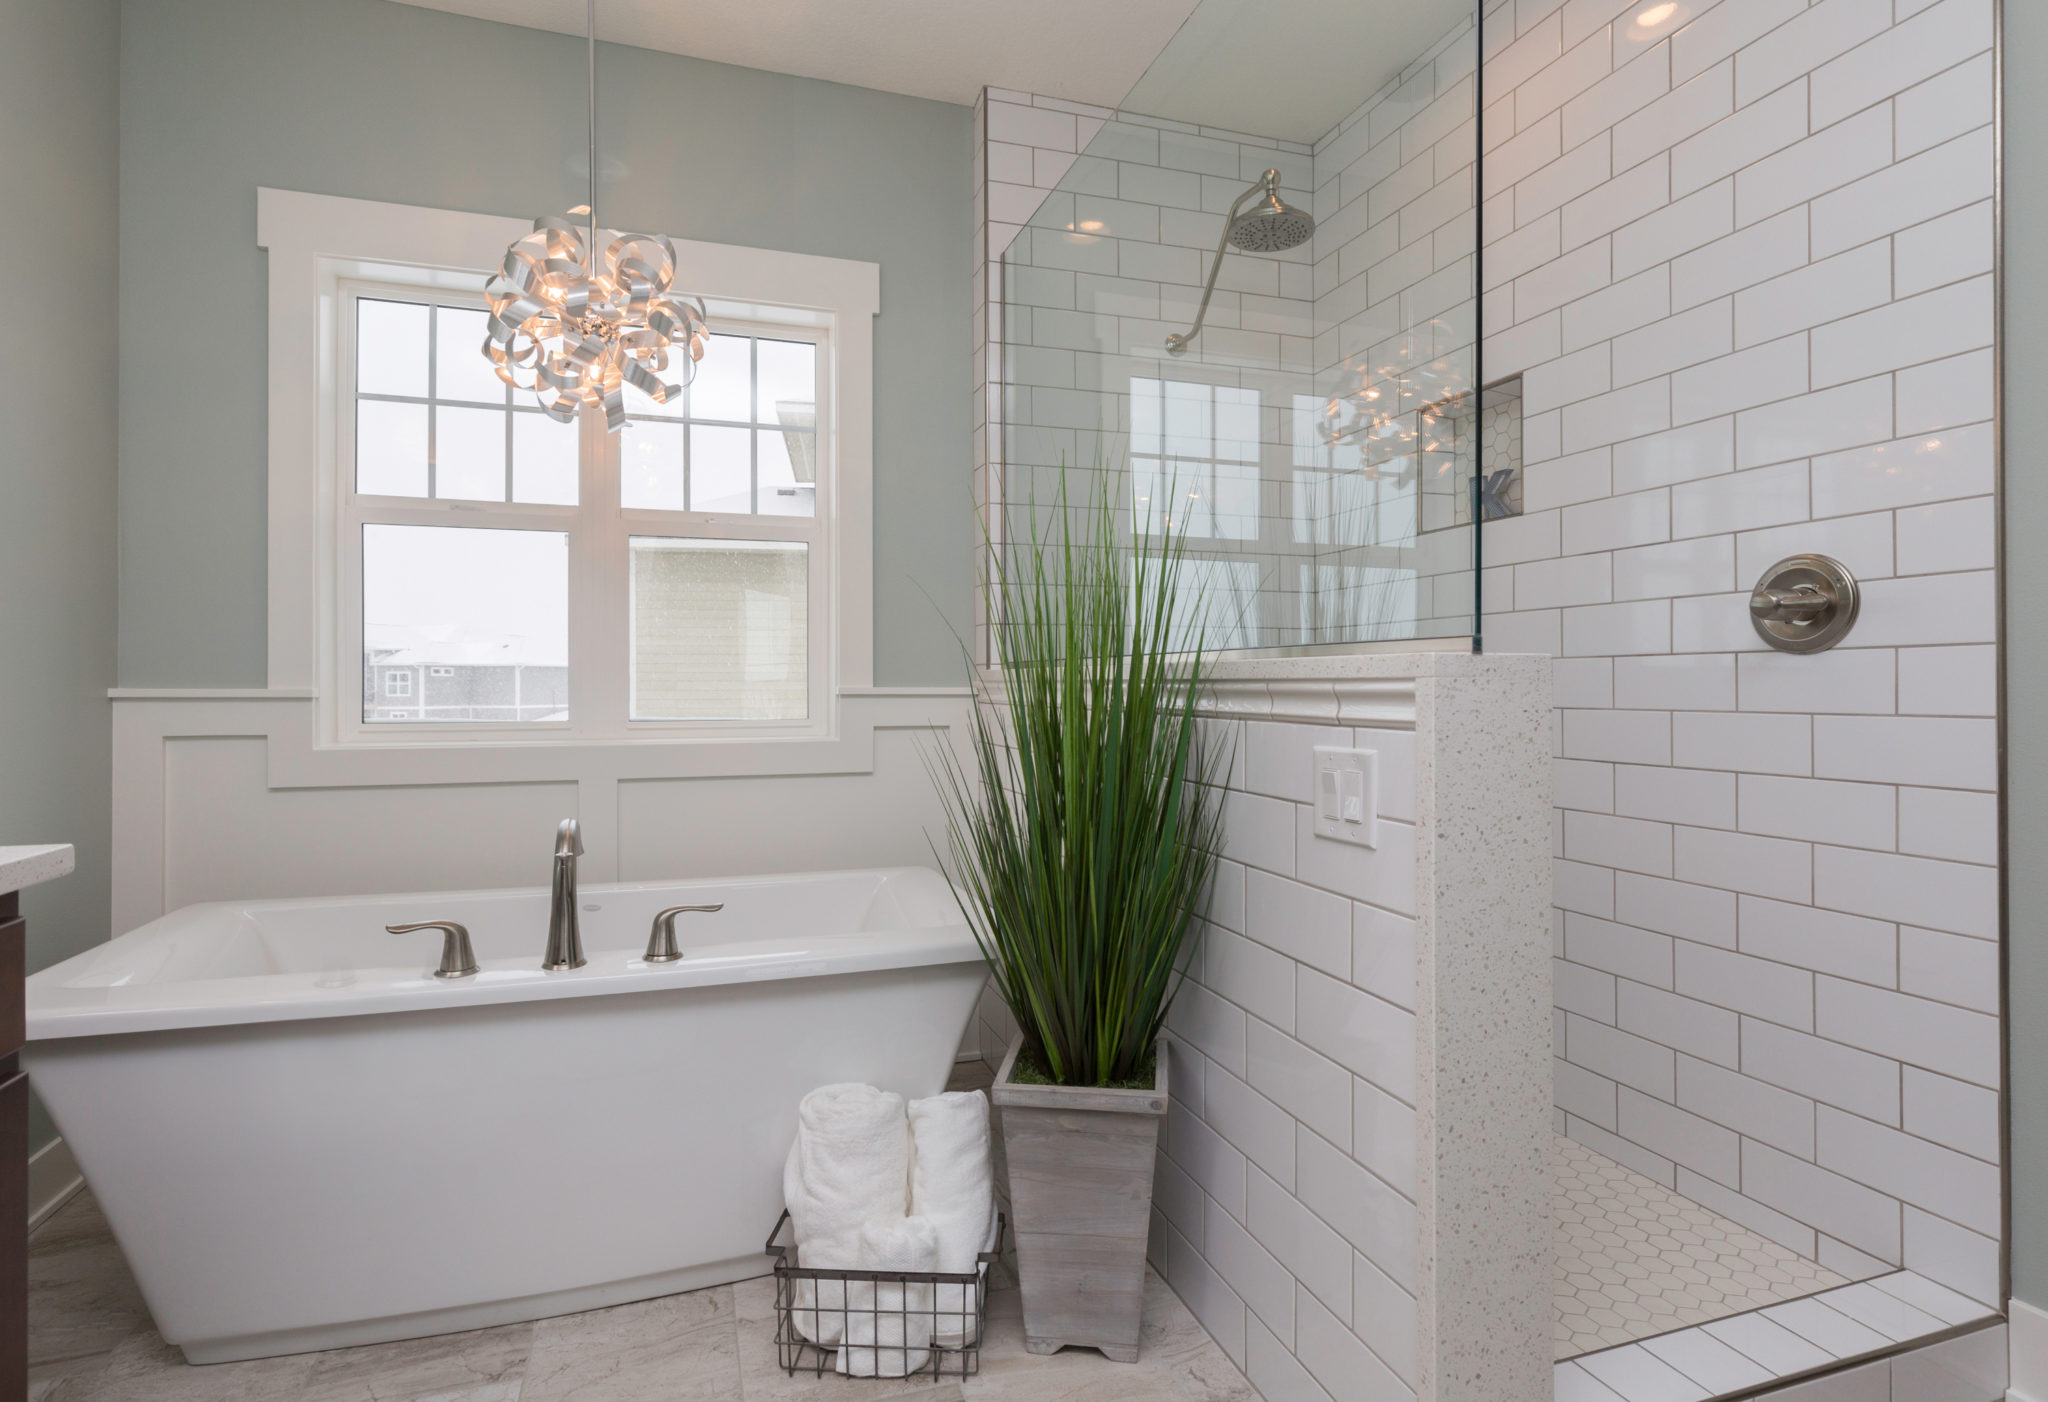 Beautiful bathrooms, Soaker tub, Des Moines bathroom renovations, Central Iowa custom home builders